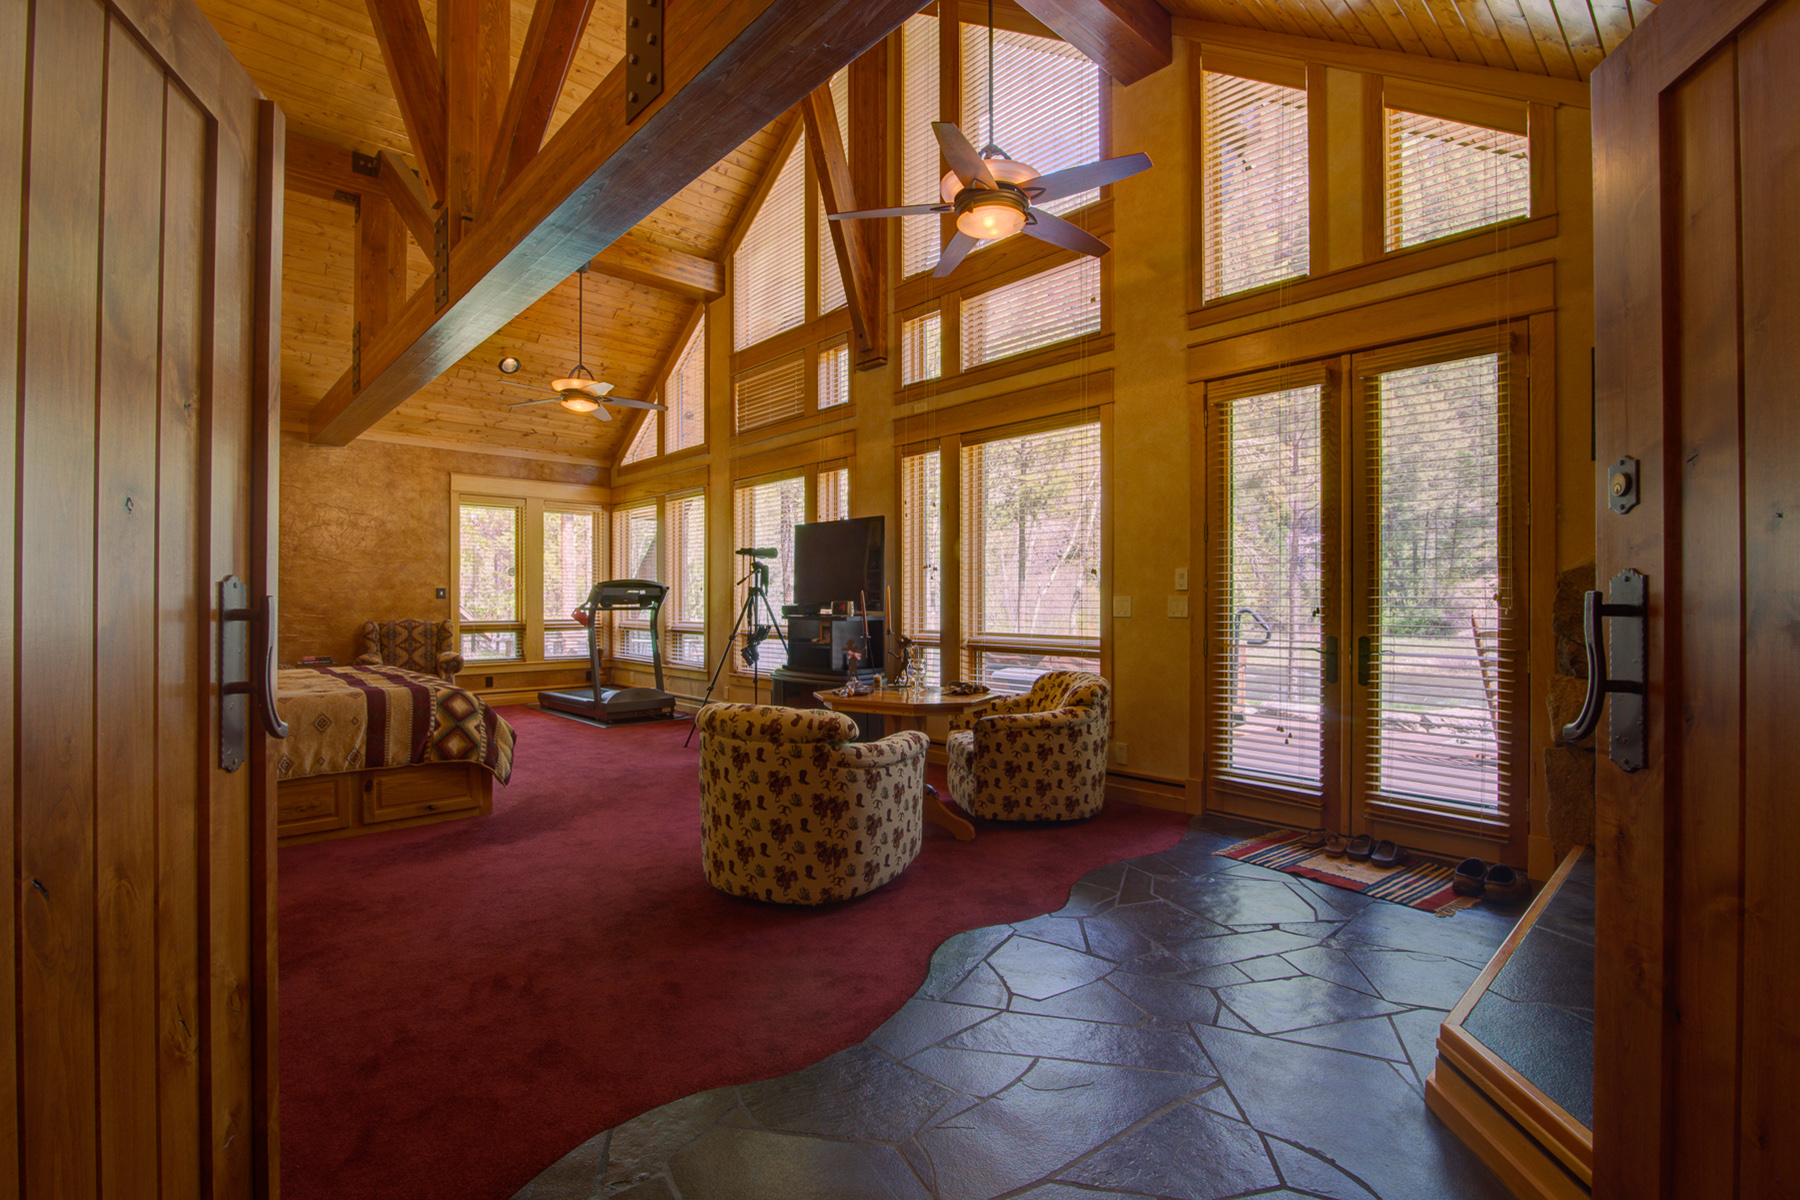 Additional photo for property listing at 5492 West Fork Road 5492  West Fork Rd Darby, Montana 59829 United States